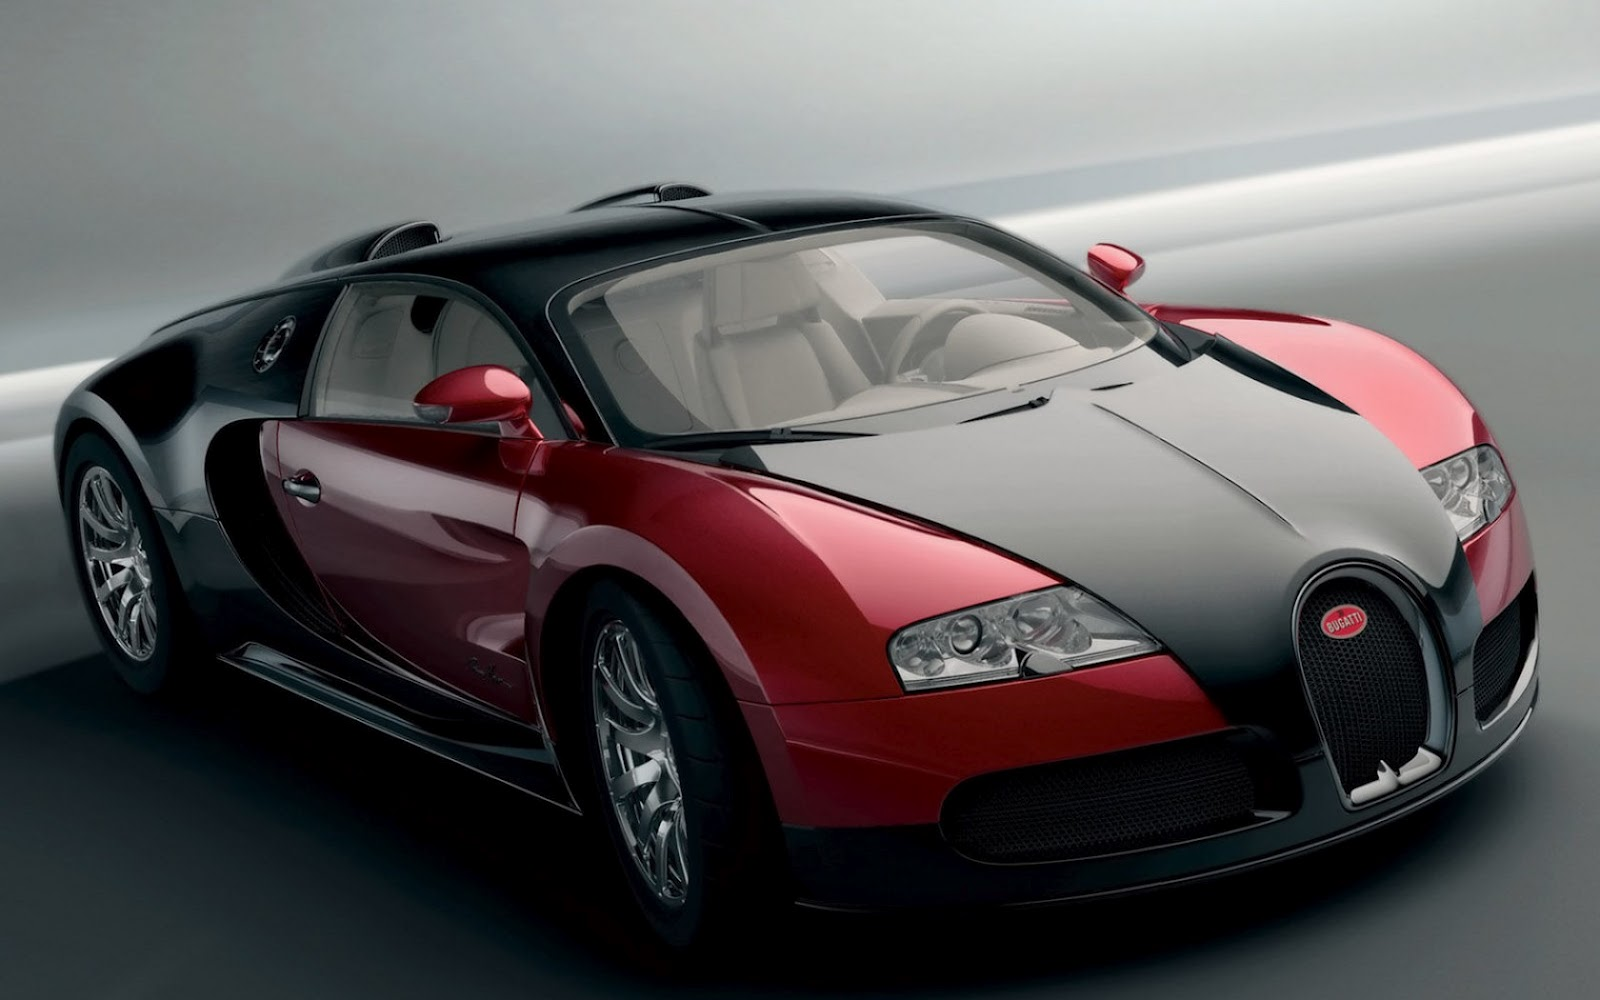 bugatti veyron red and black | Cool Car Wallpapers